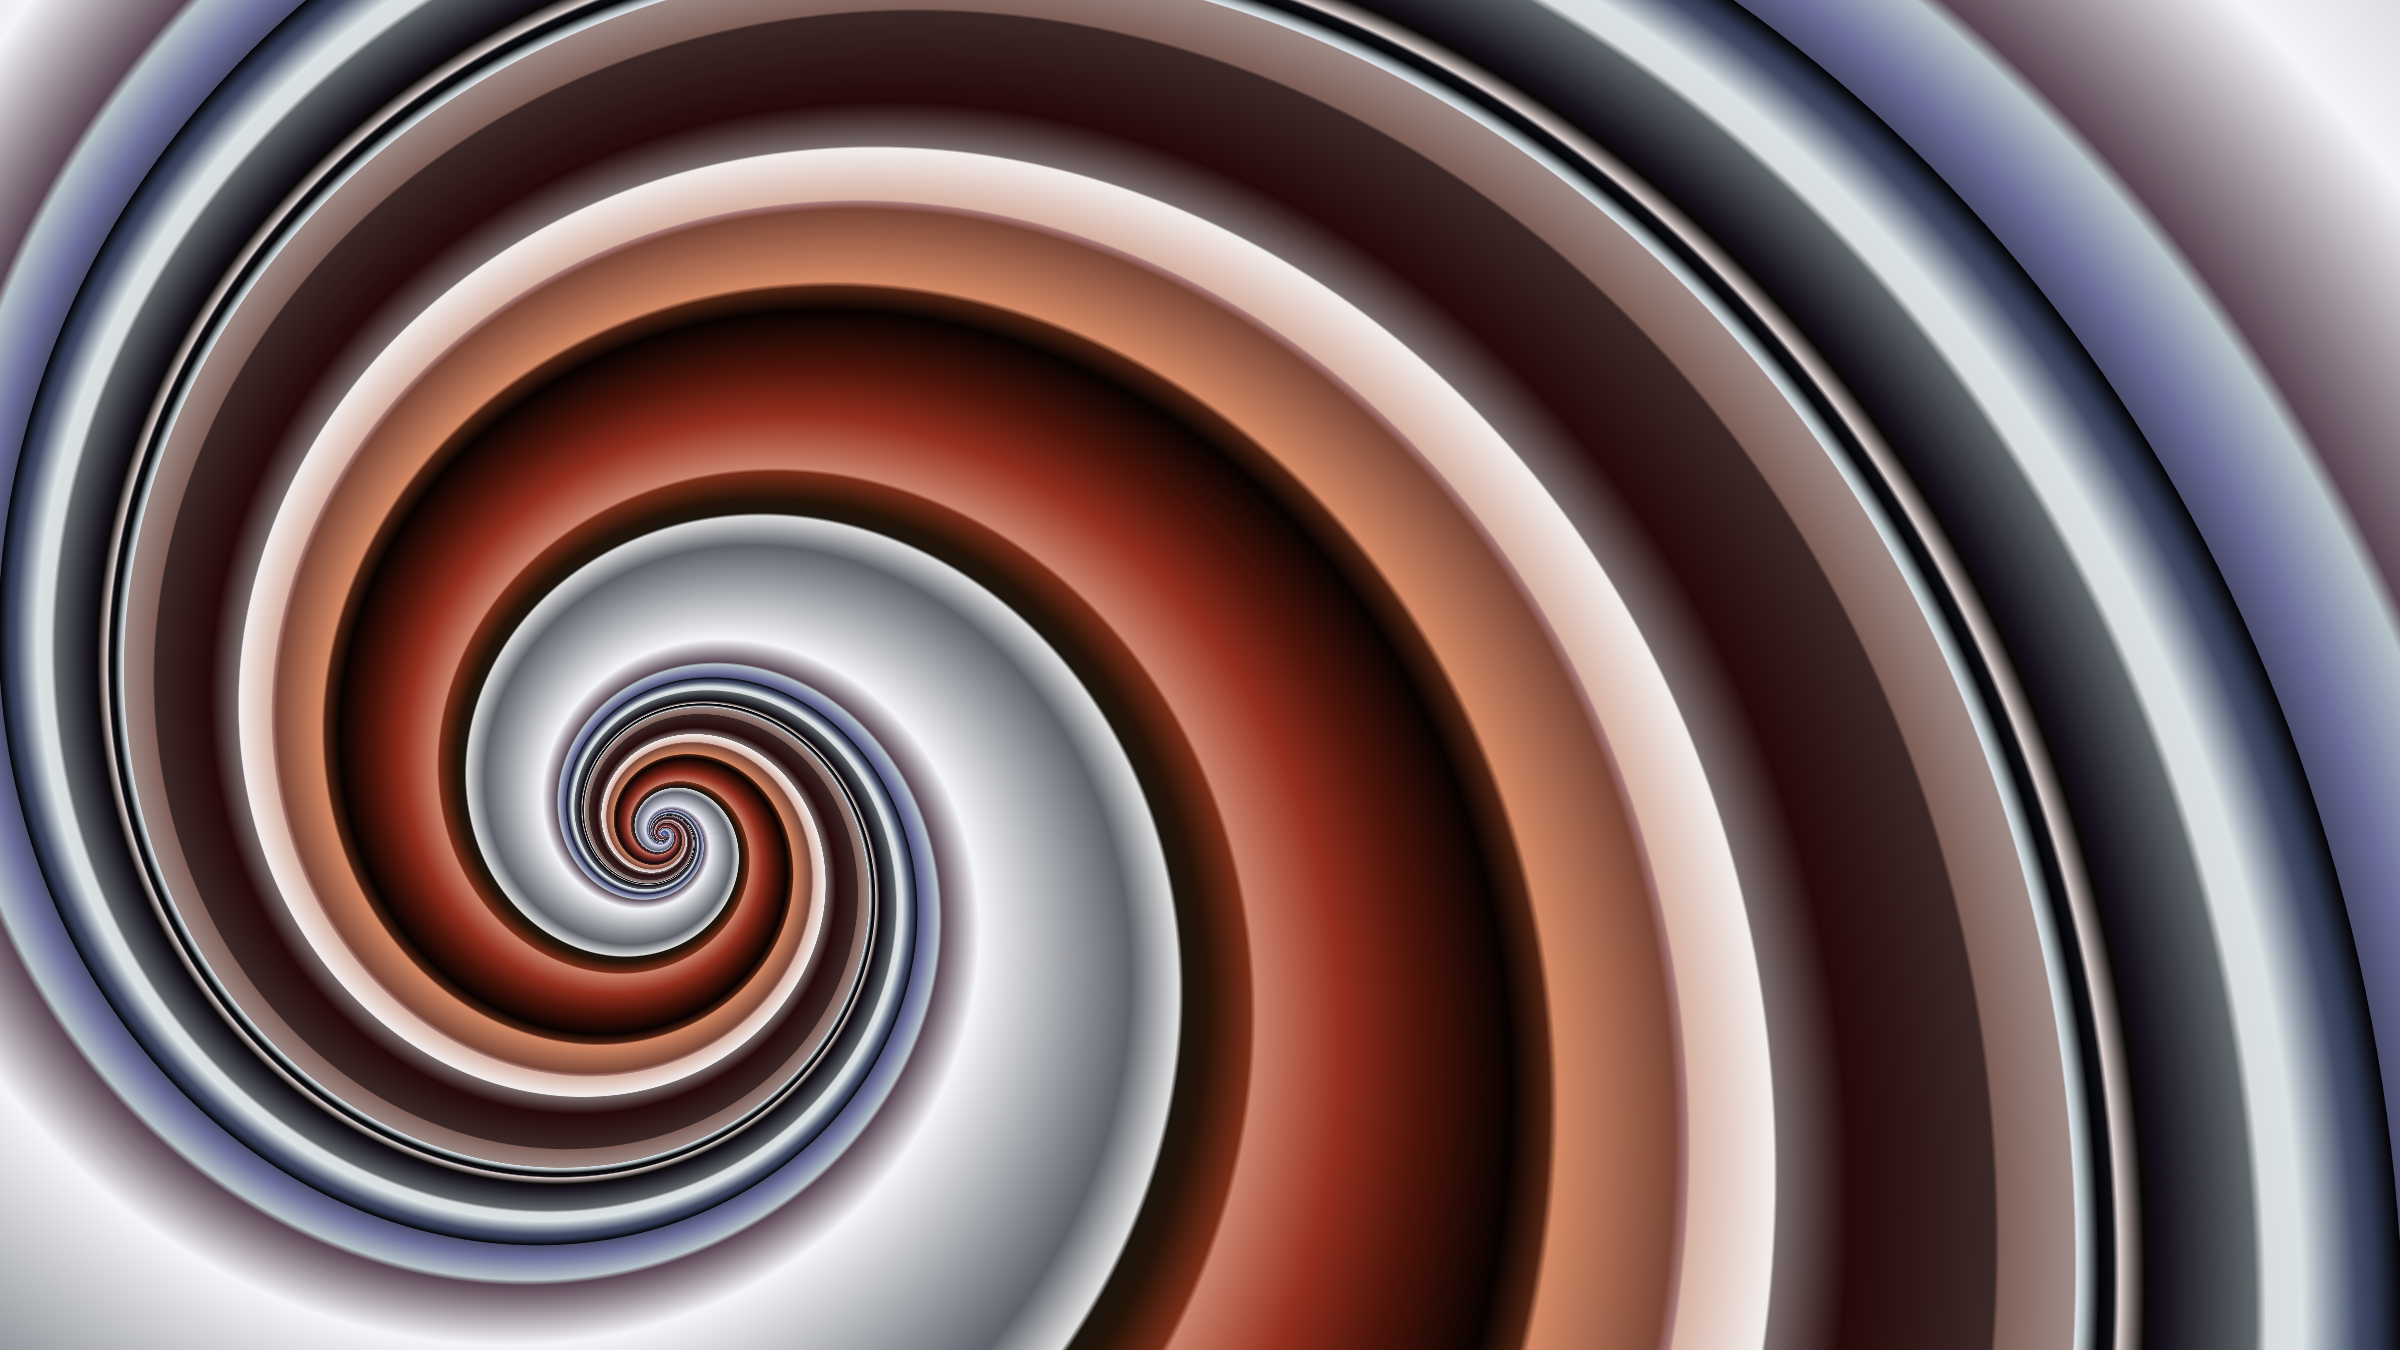 spiral wallpaper 2 by Lazur URH